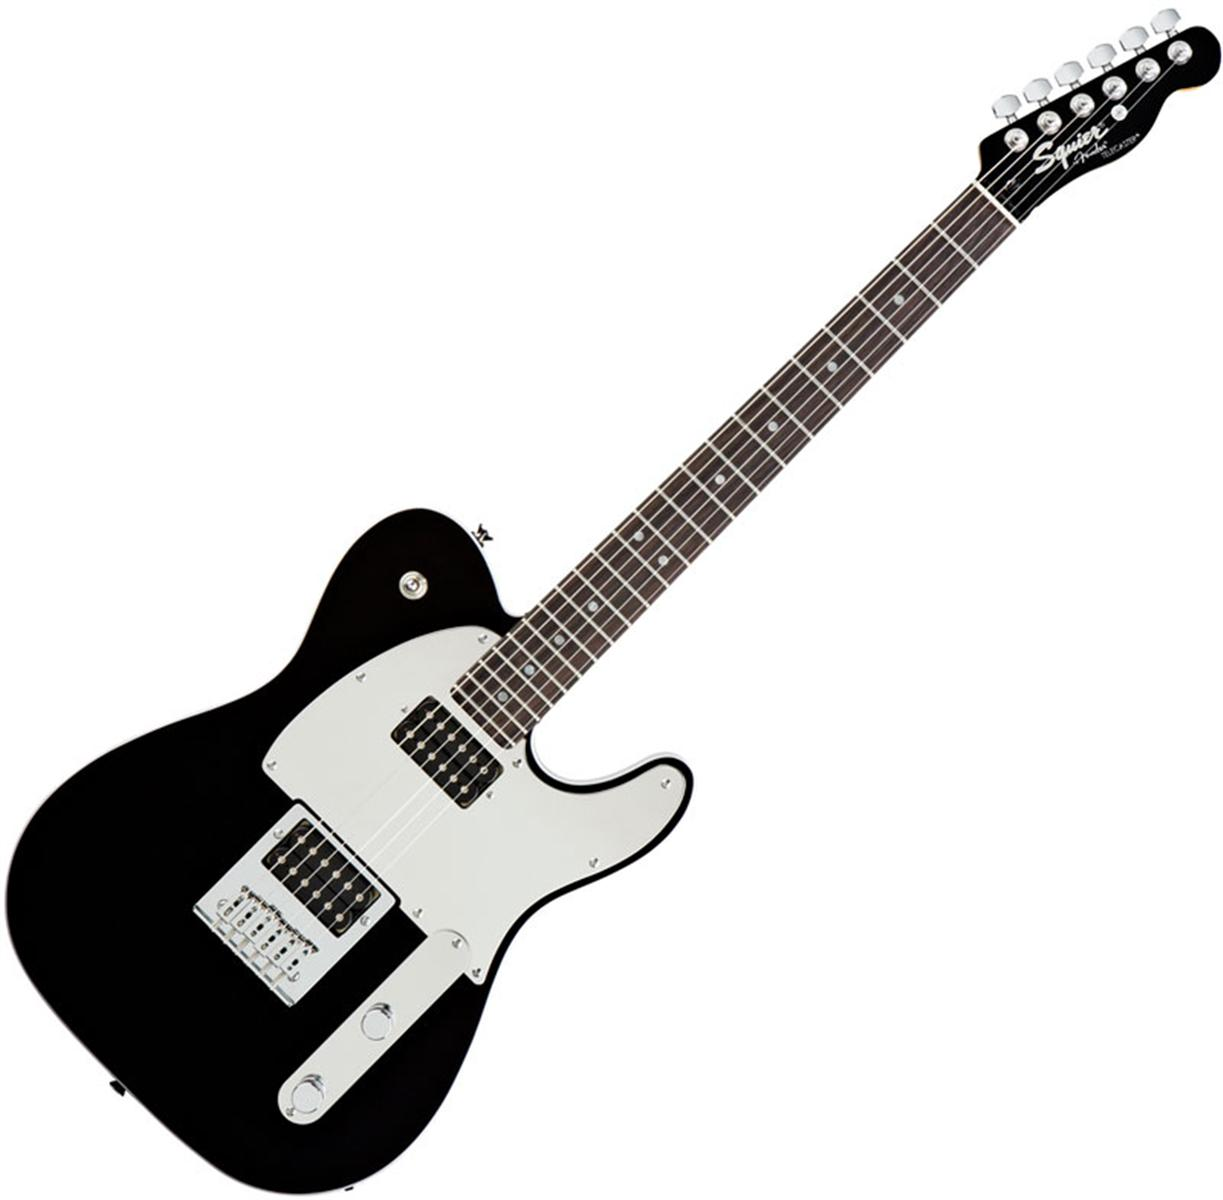 electric guitar clipart clipart panda free clipart images